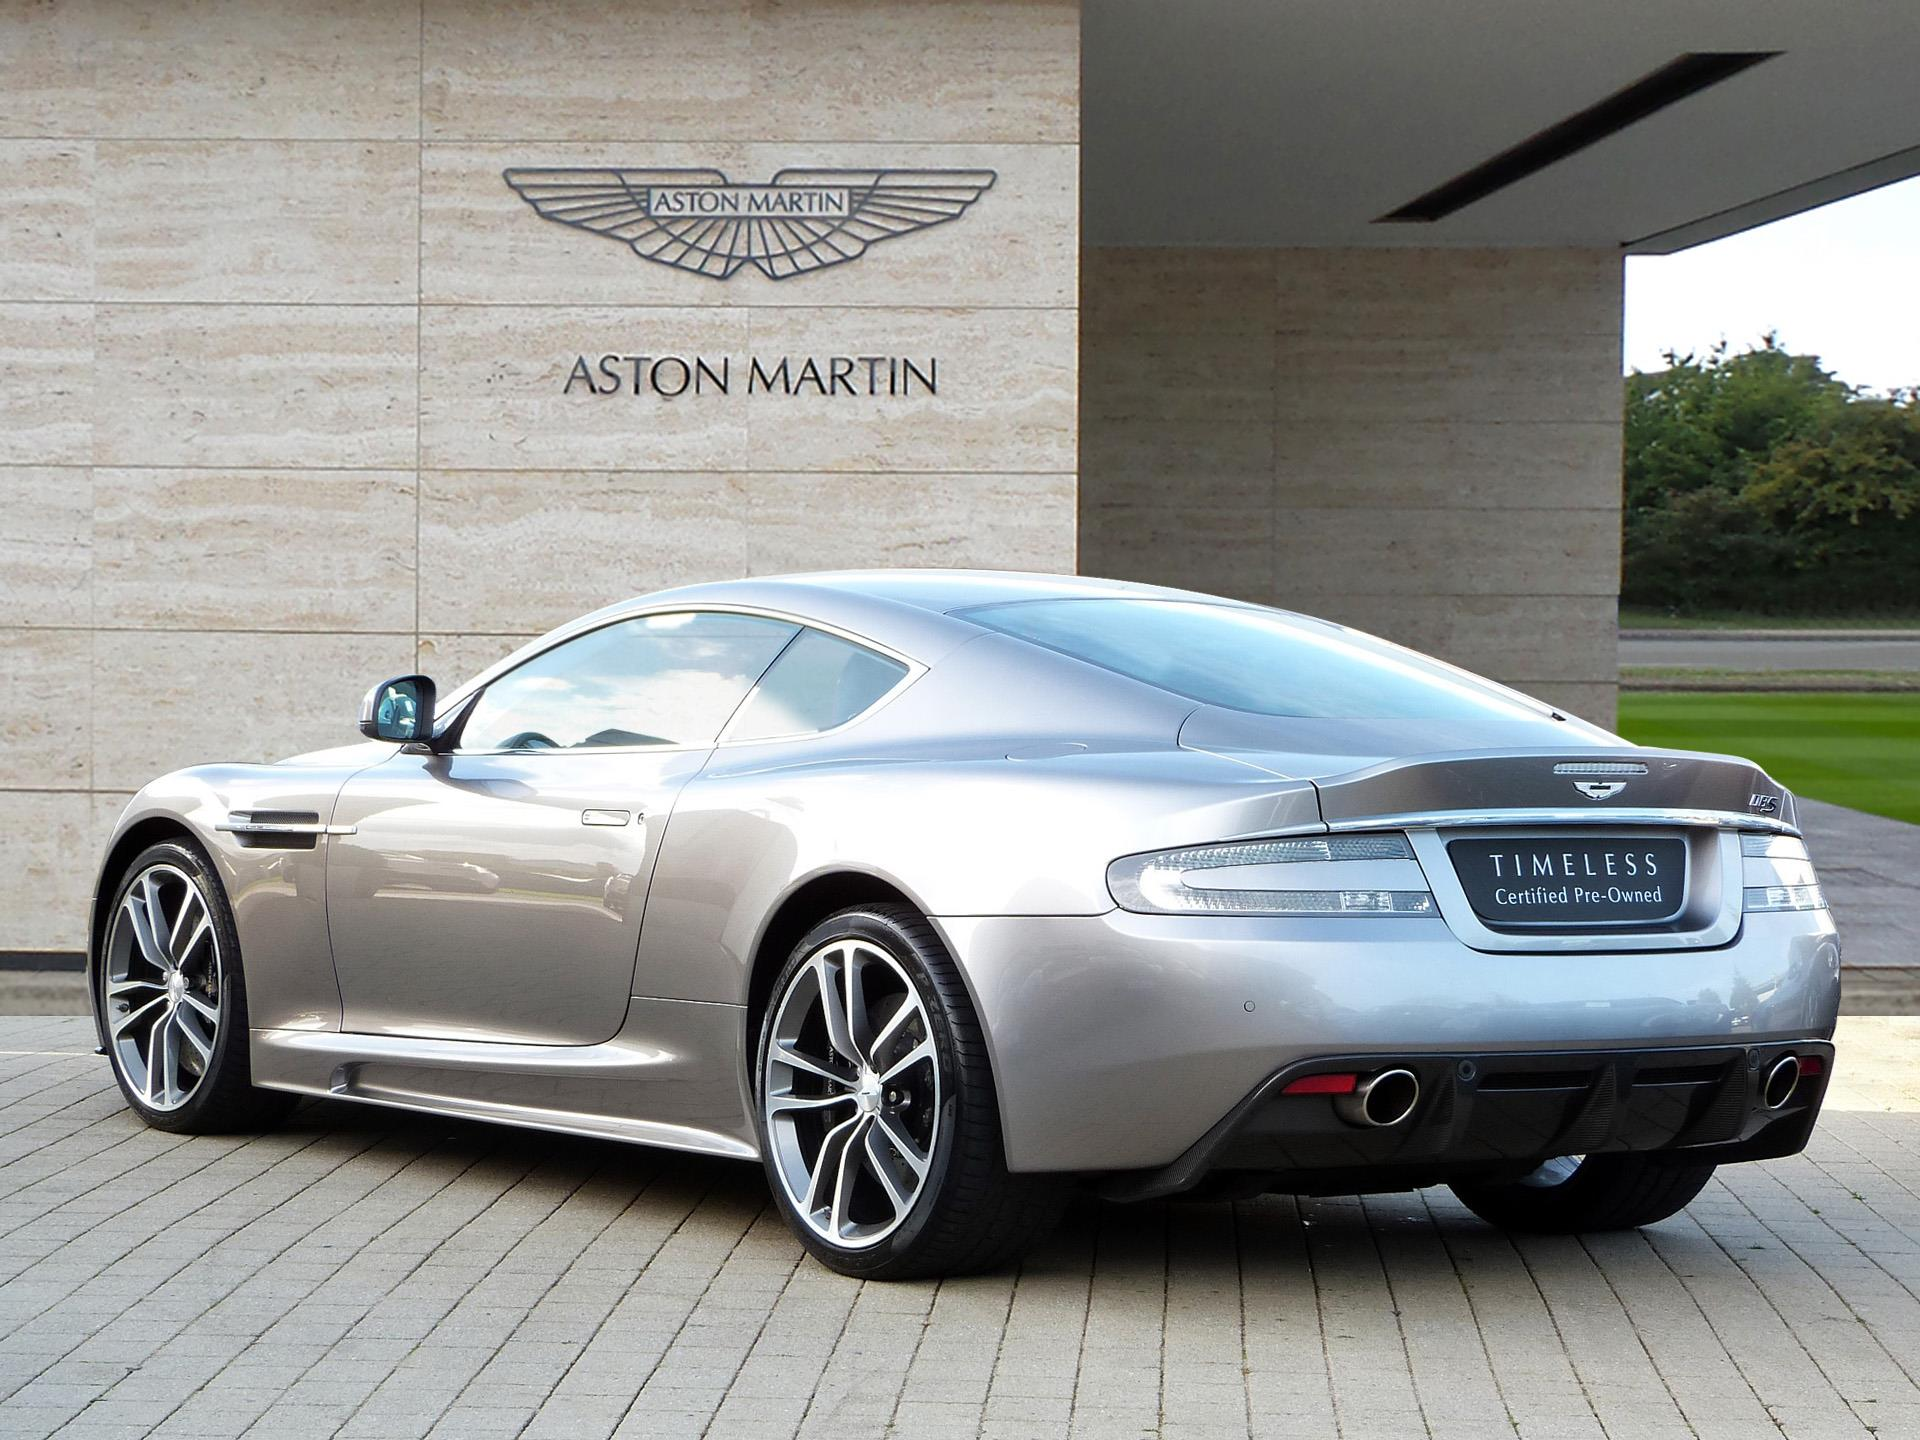 aston martin lagonda pre owned used aston martins car details dbs coupe mx11ffs. Black Bedroom Furniture Sets. Home Design Ideas